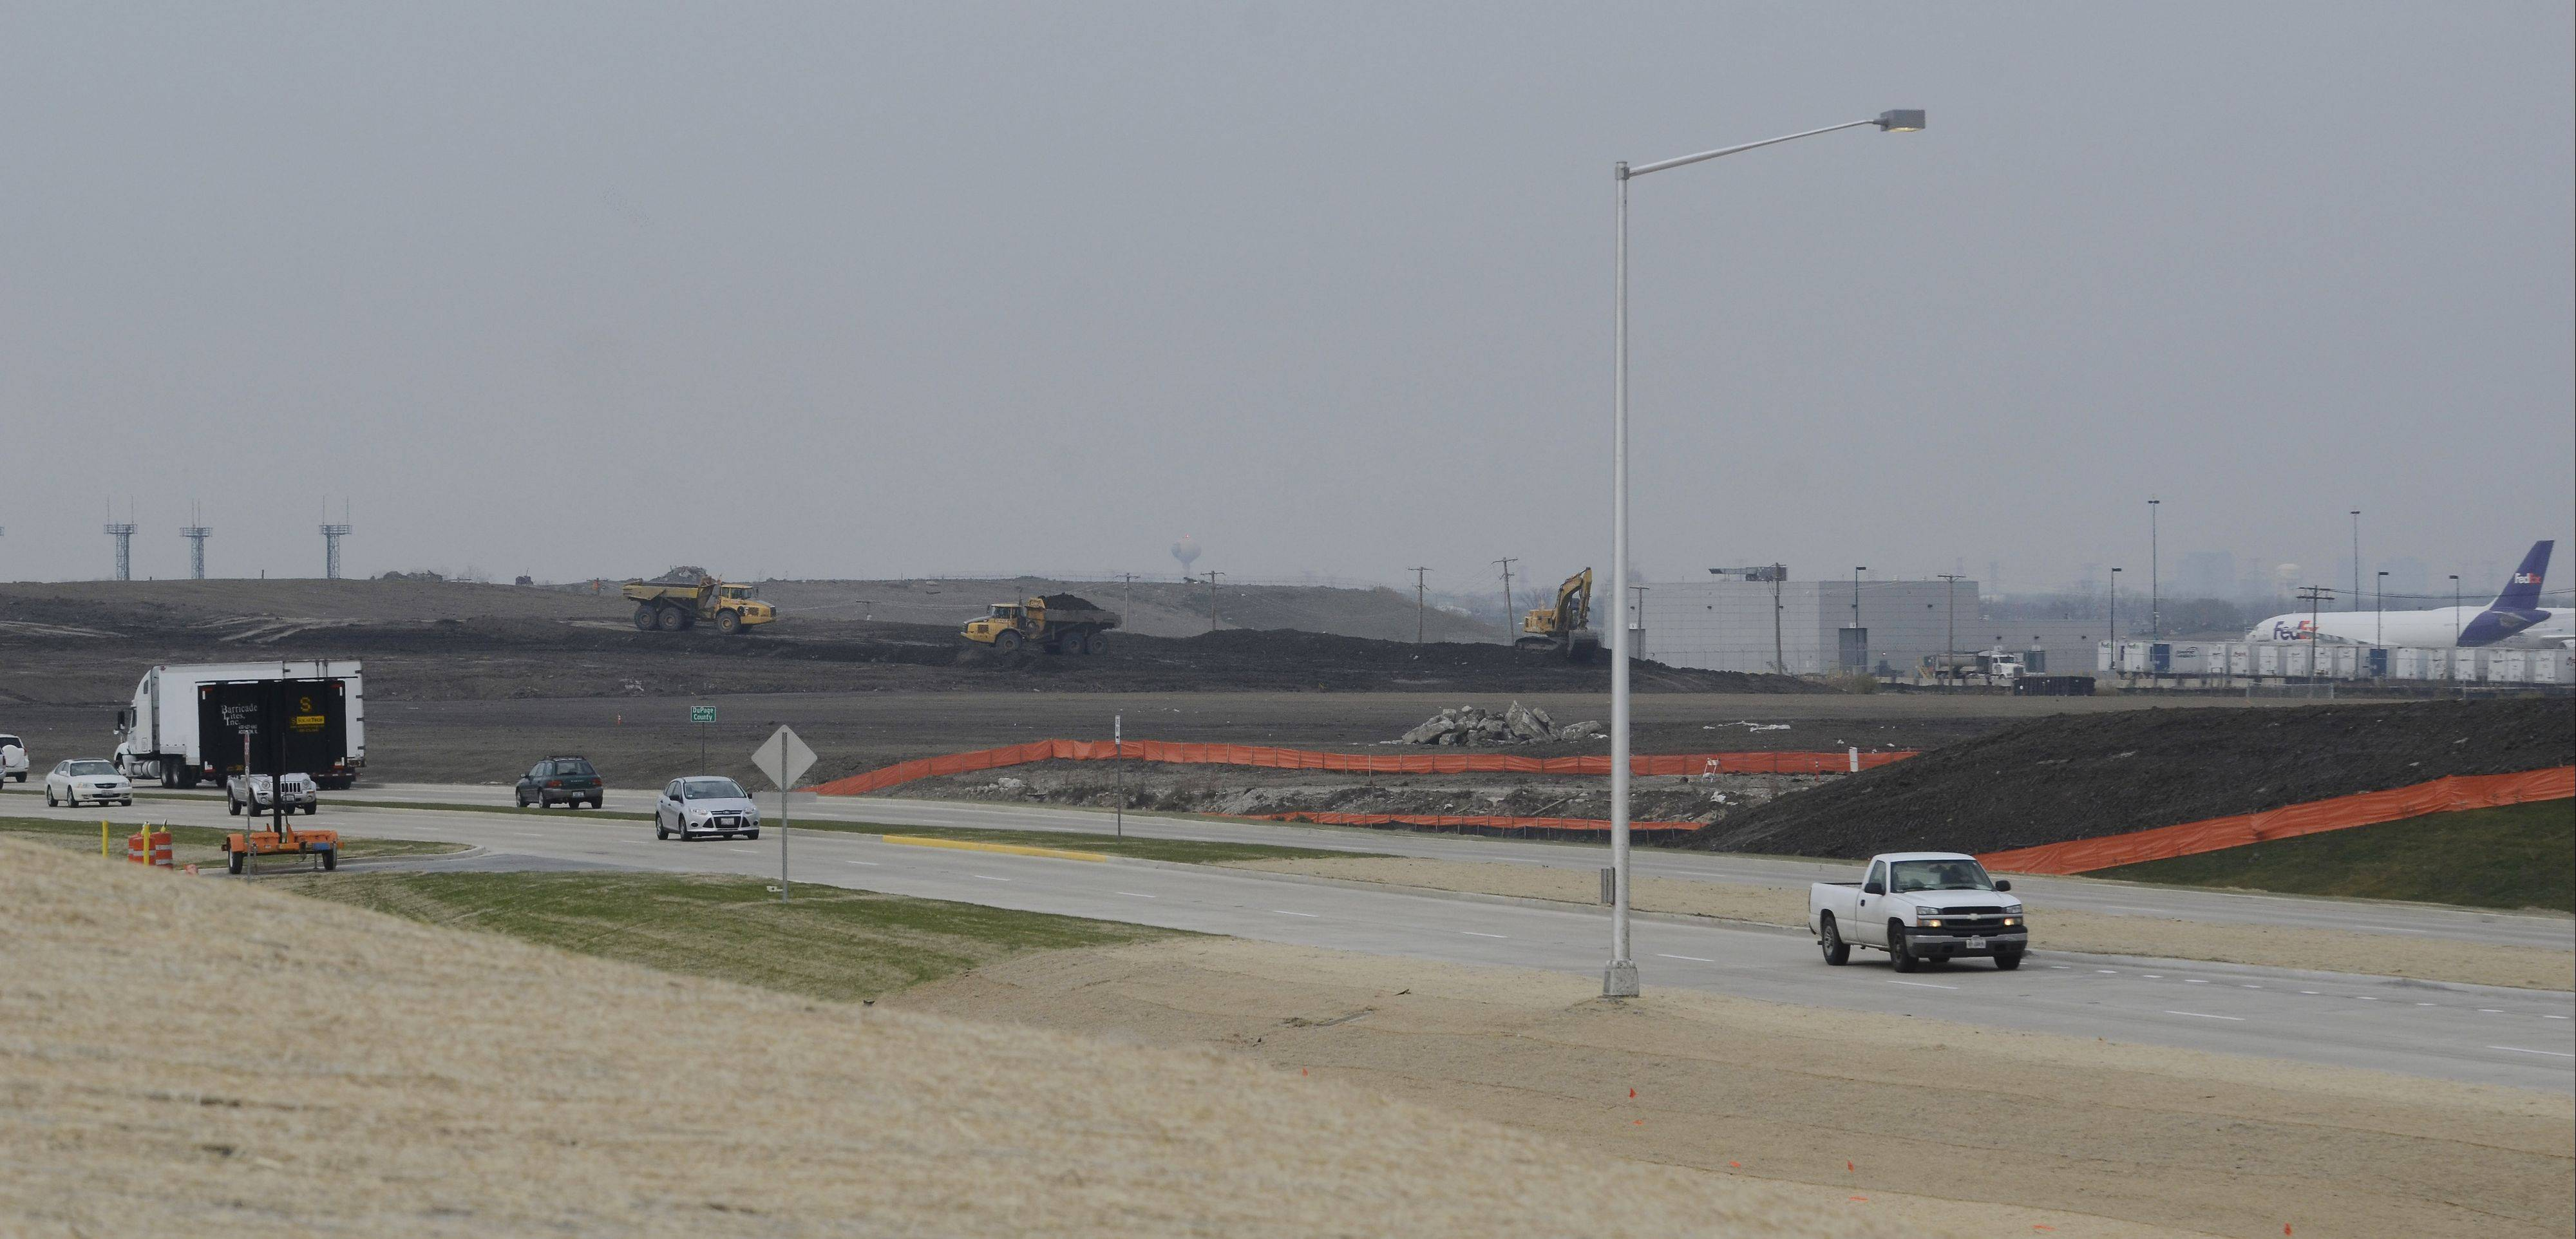 Workers continue progress on a new runway on the south side of O'Hare International Airport, set to be commissioned in 2015.